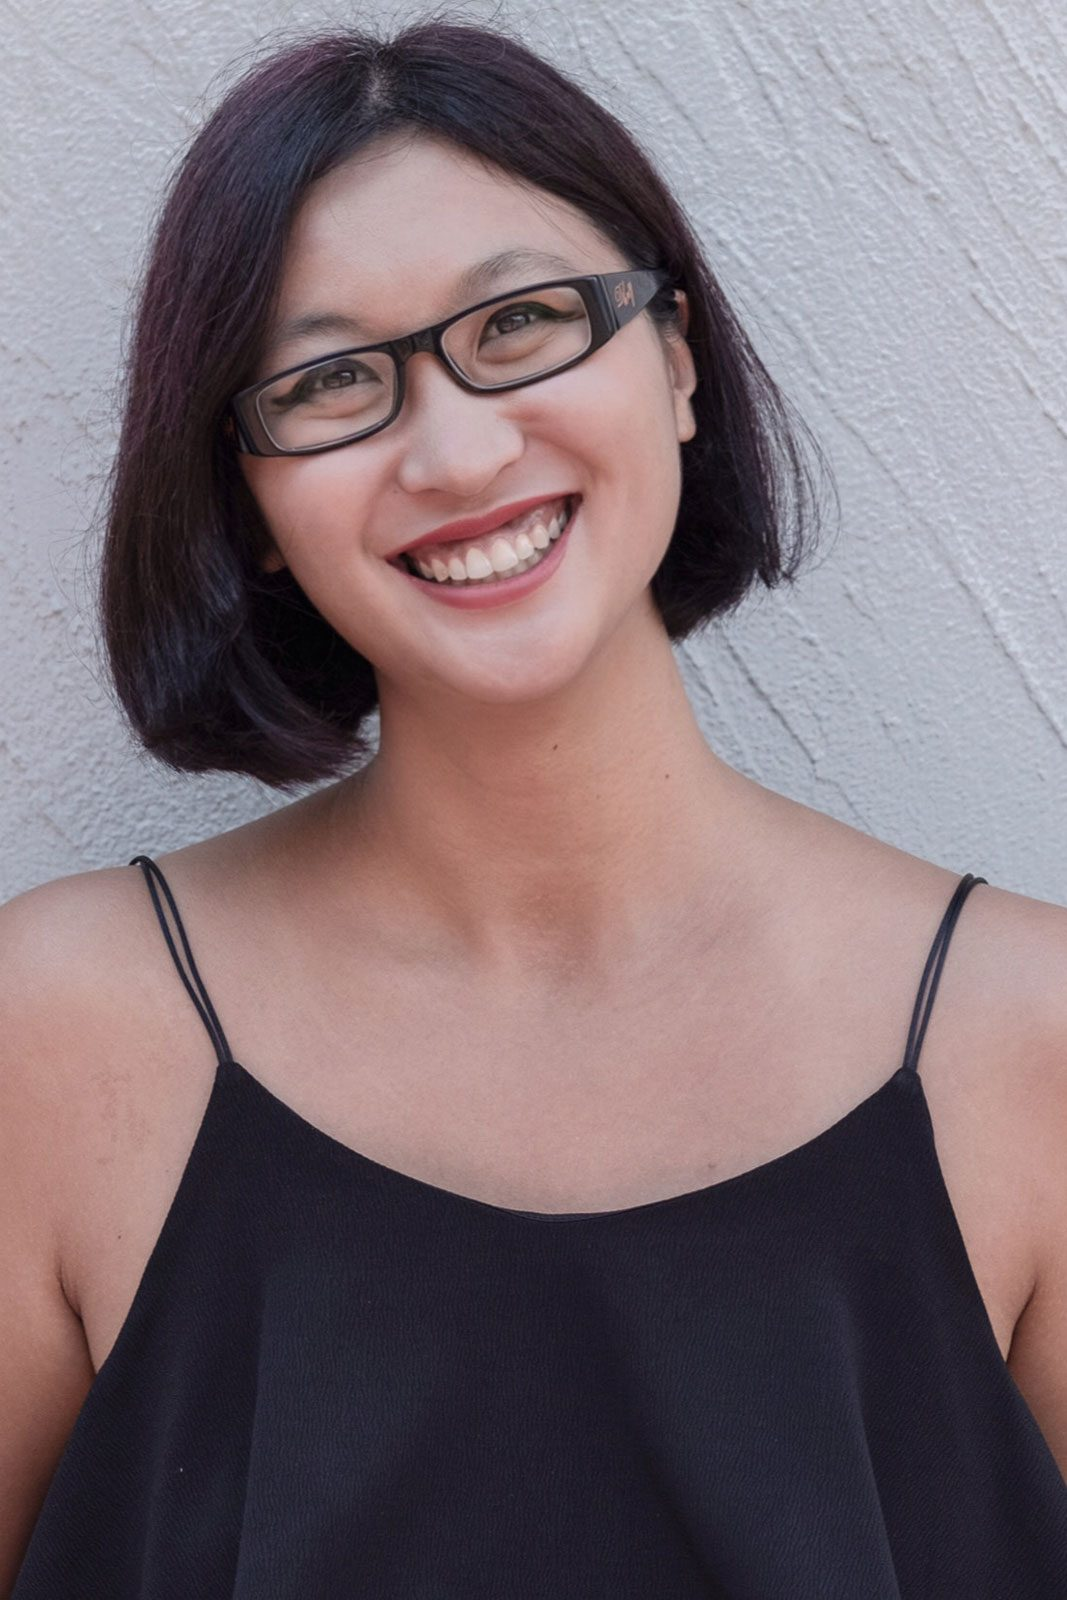 Young woman with glasses smiling